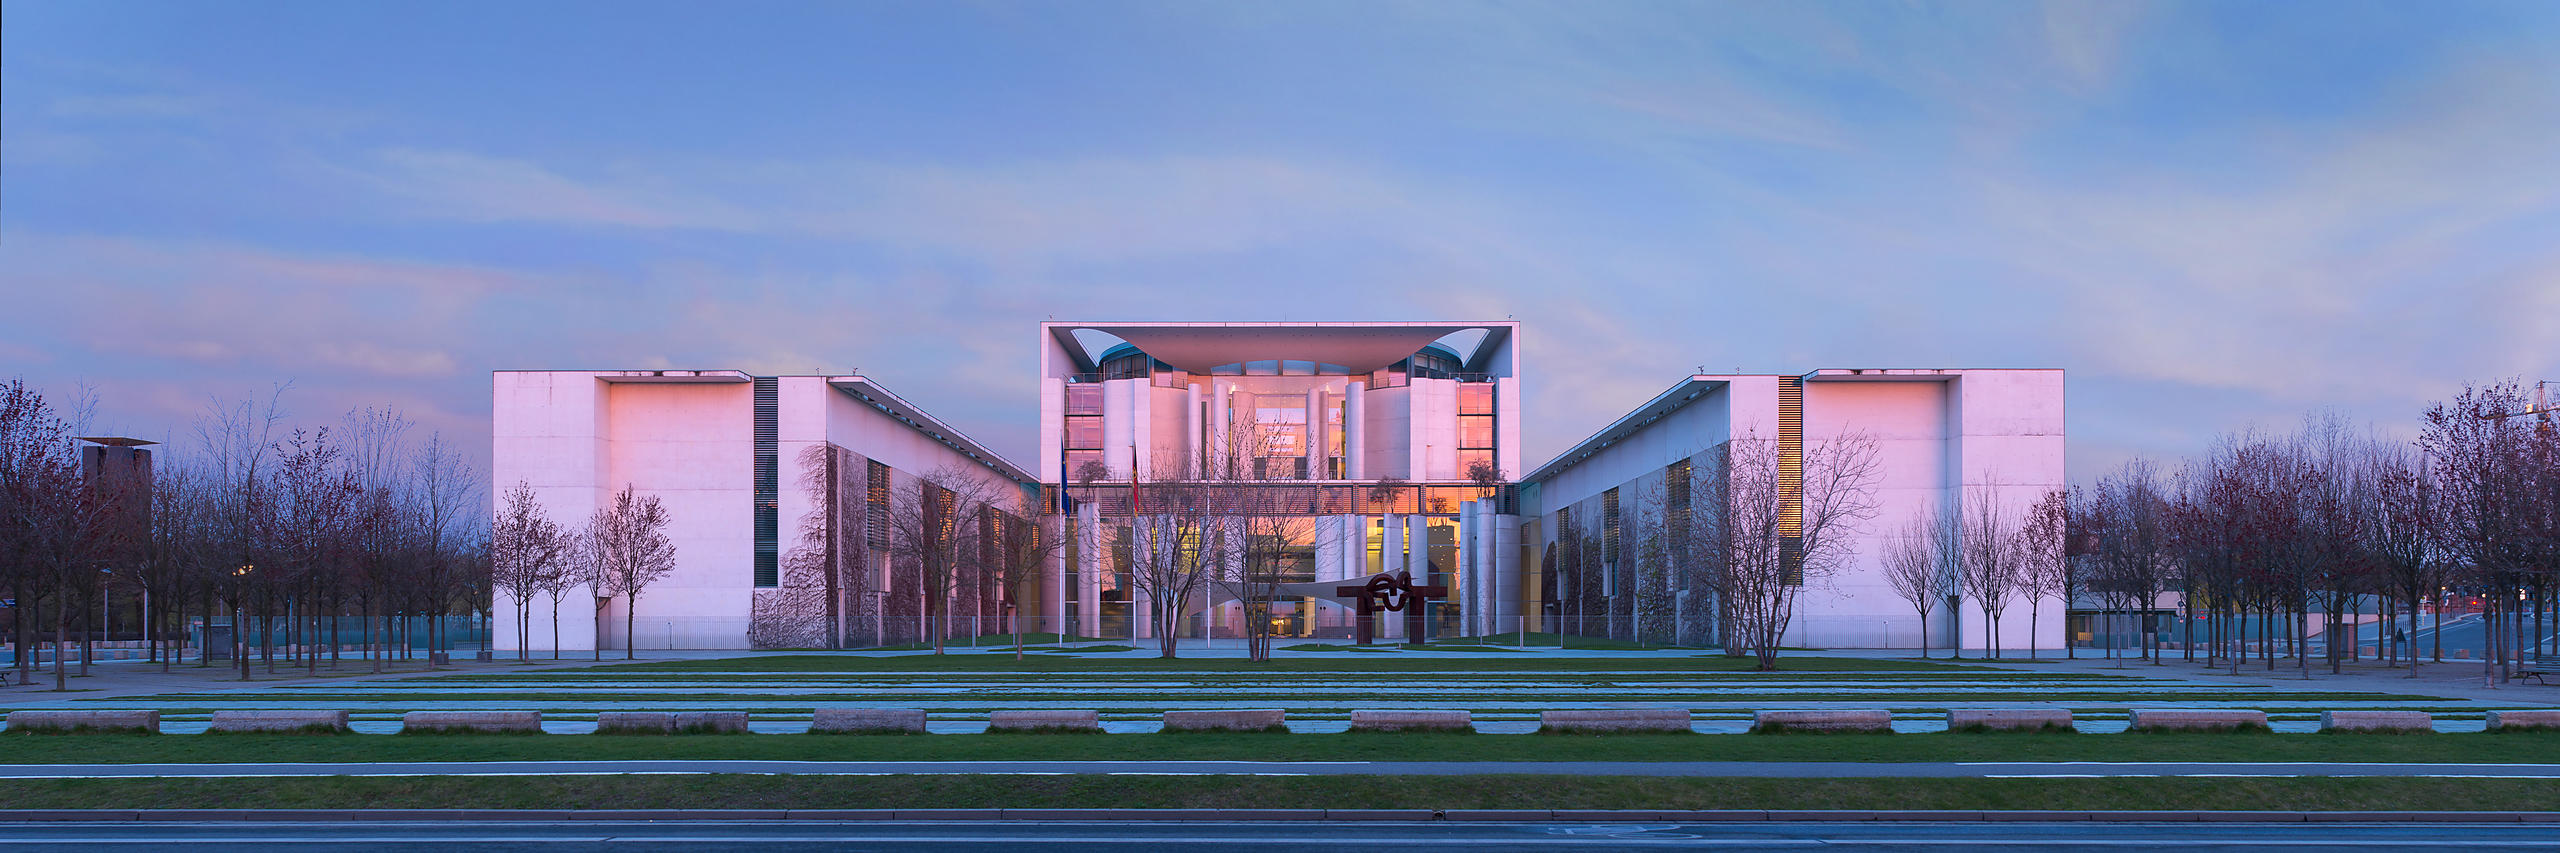 Federal Chancellery - Berlin, Germany | Axel Schultes, Charlotte Frank and Christoph Witt